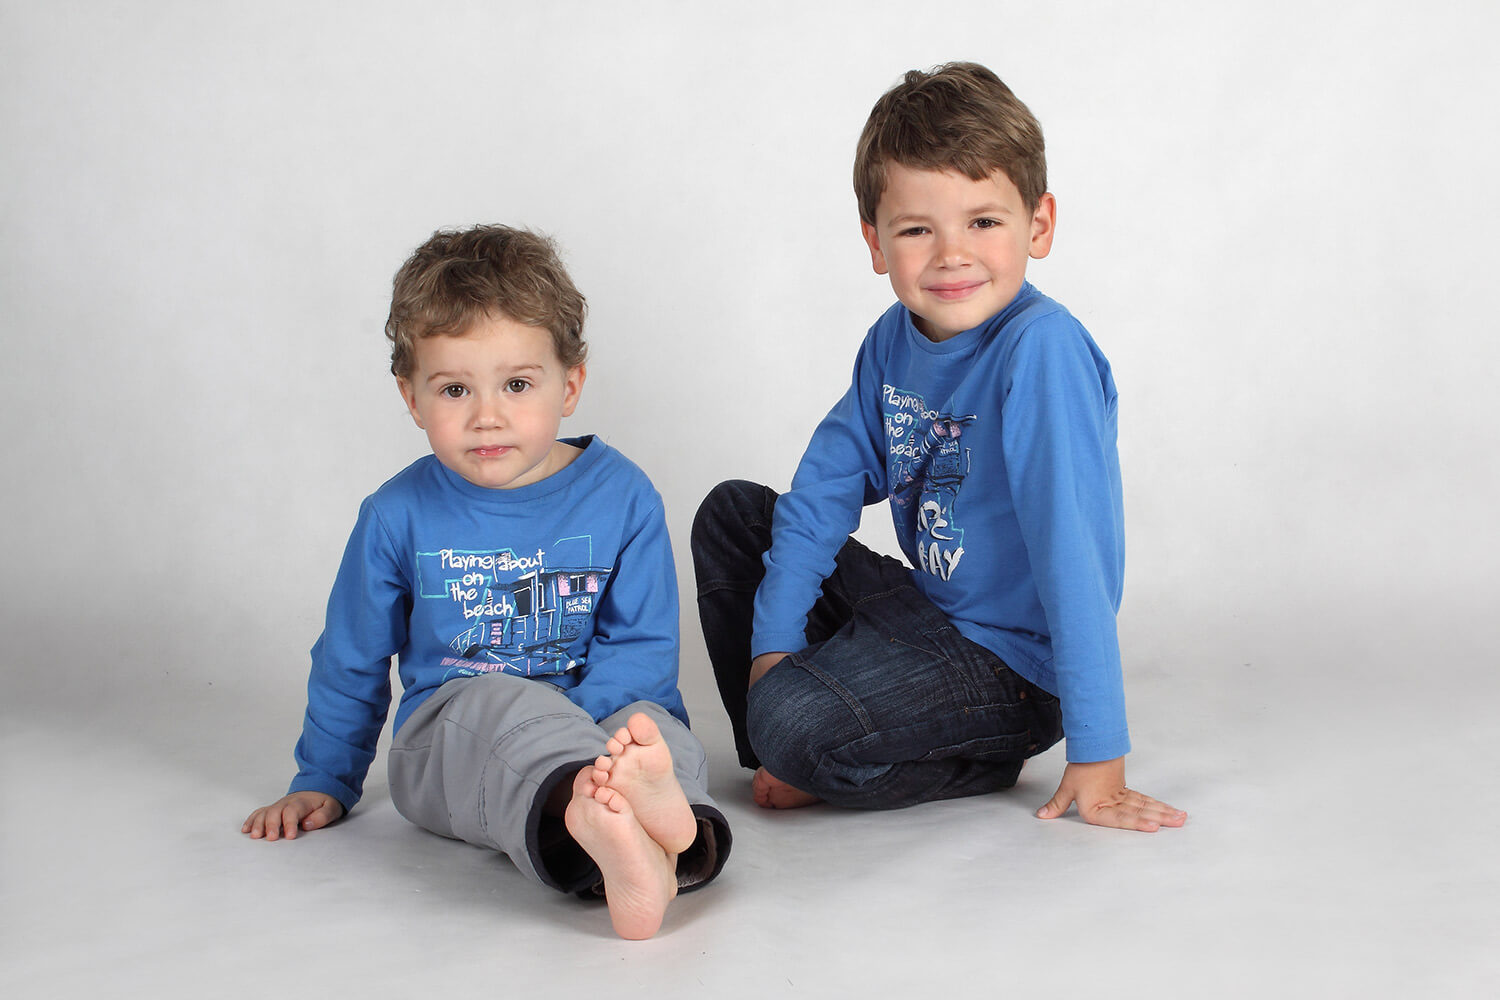 family photo of two brothers with blue T-shirts on a light background